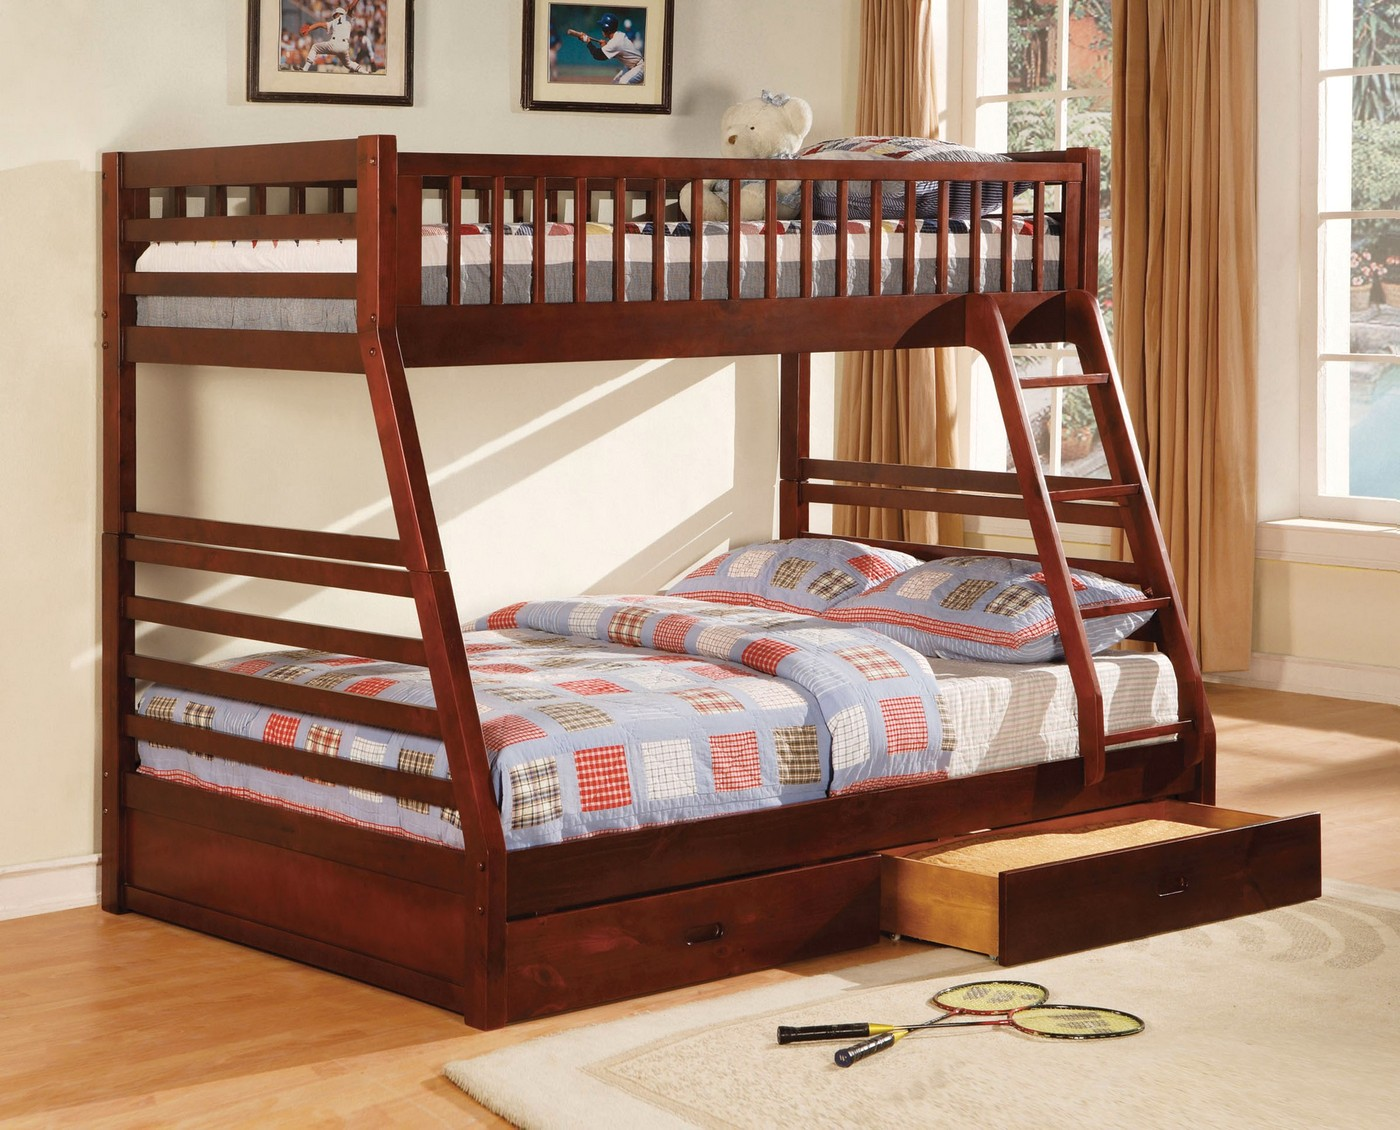 California Ii Cherry Bunk Bed With Two Drawers Cm Bk601ch